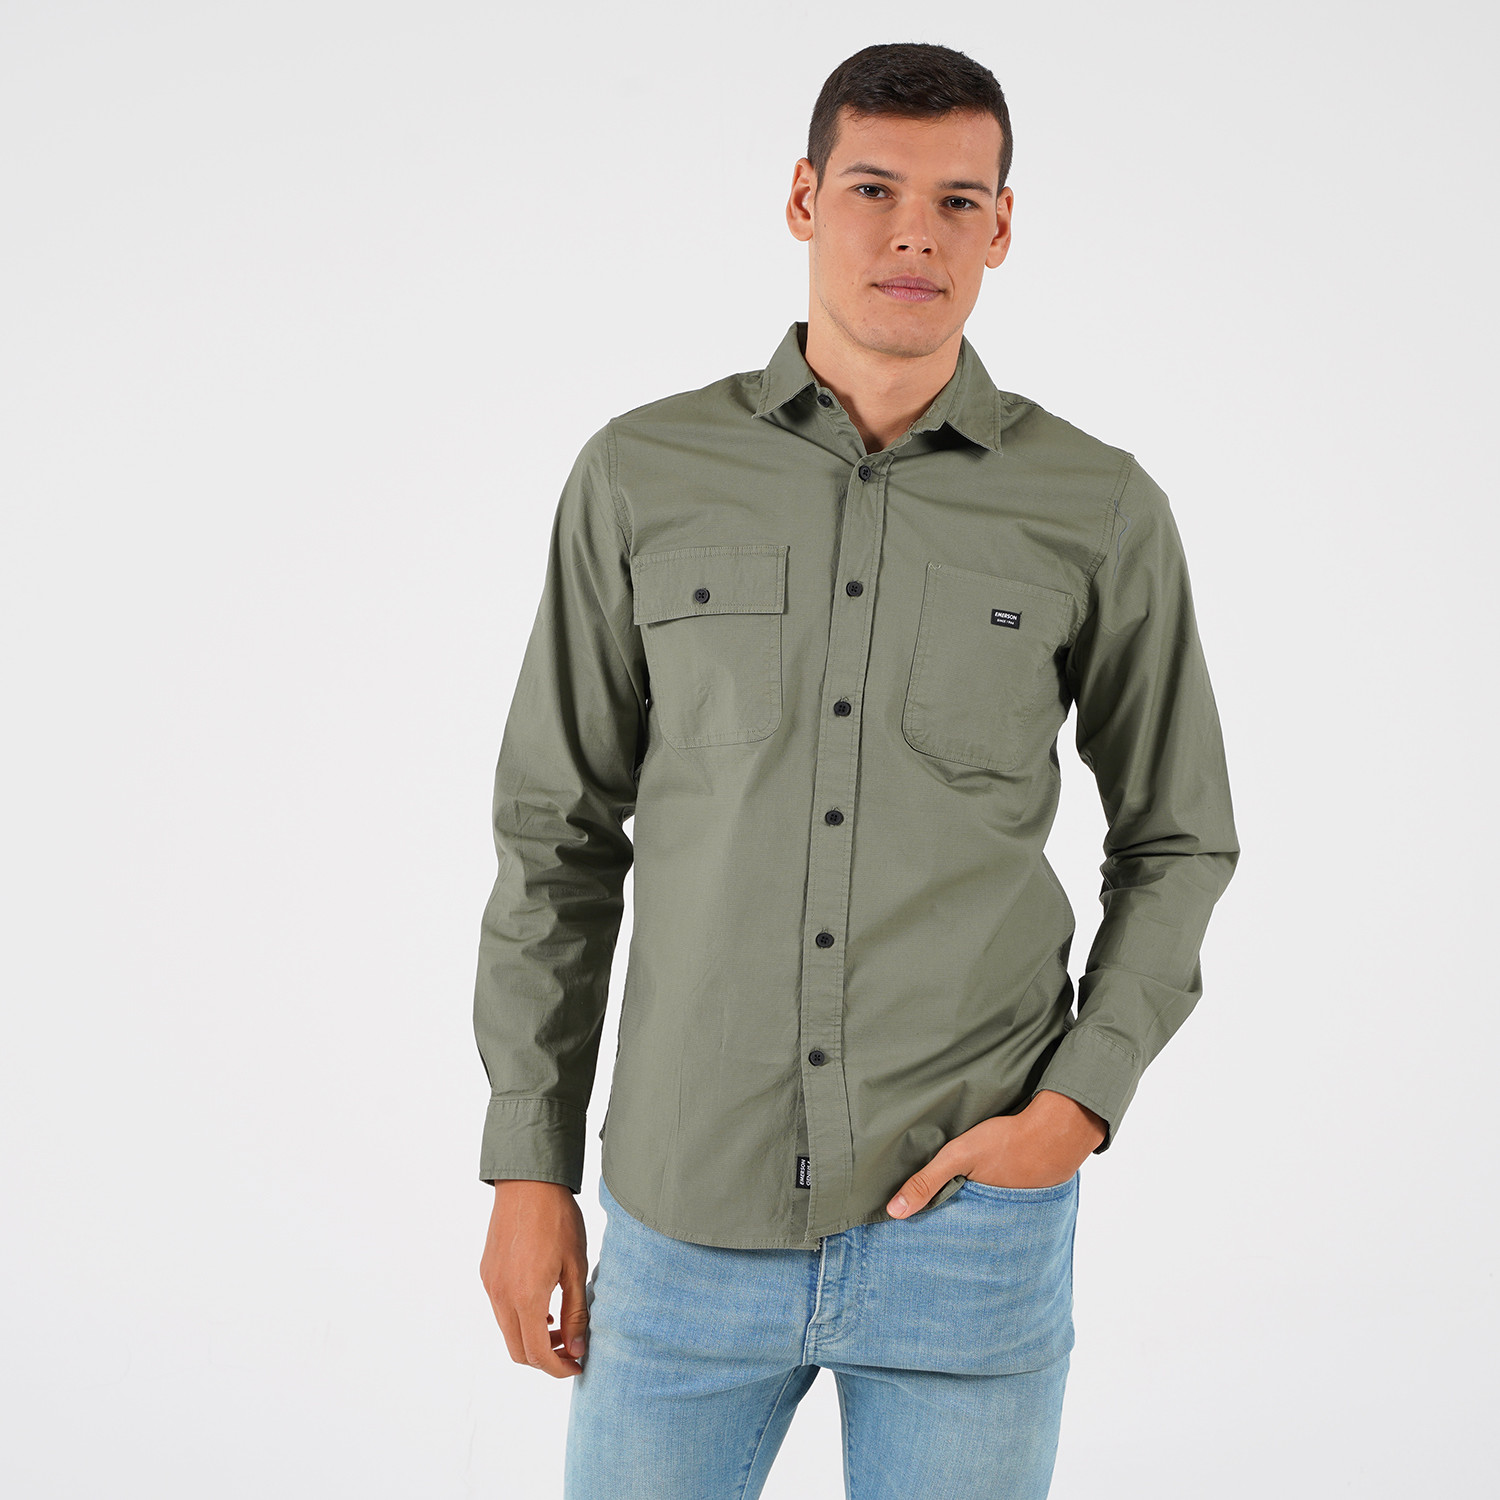 Emerson Men's Cotton Shirt (9000054104_1985)